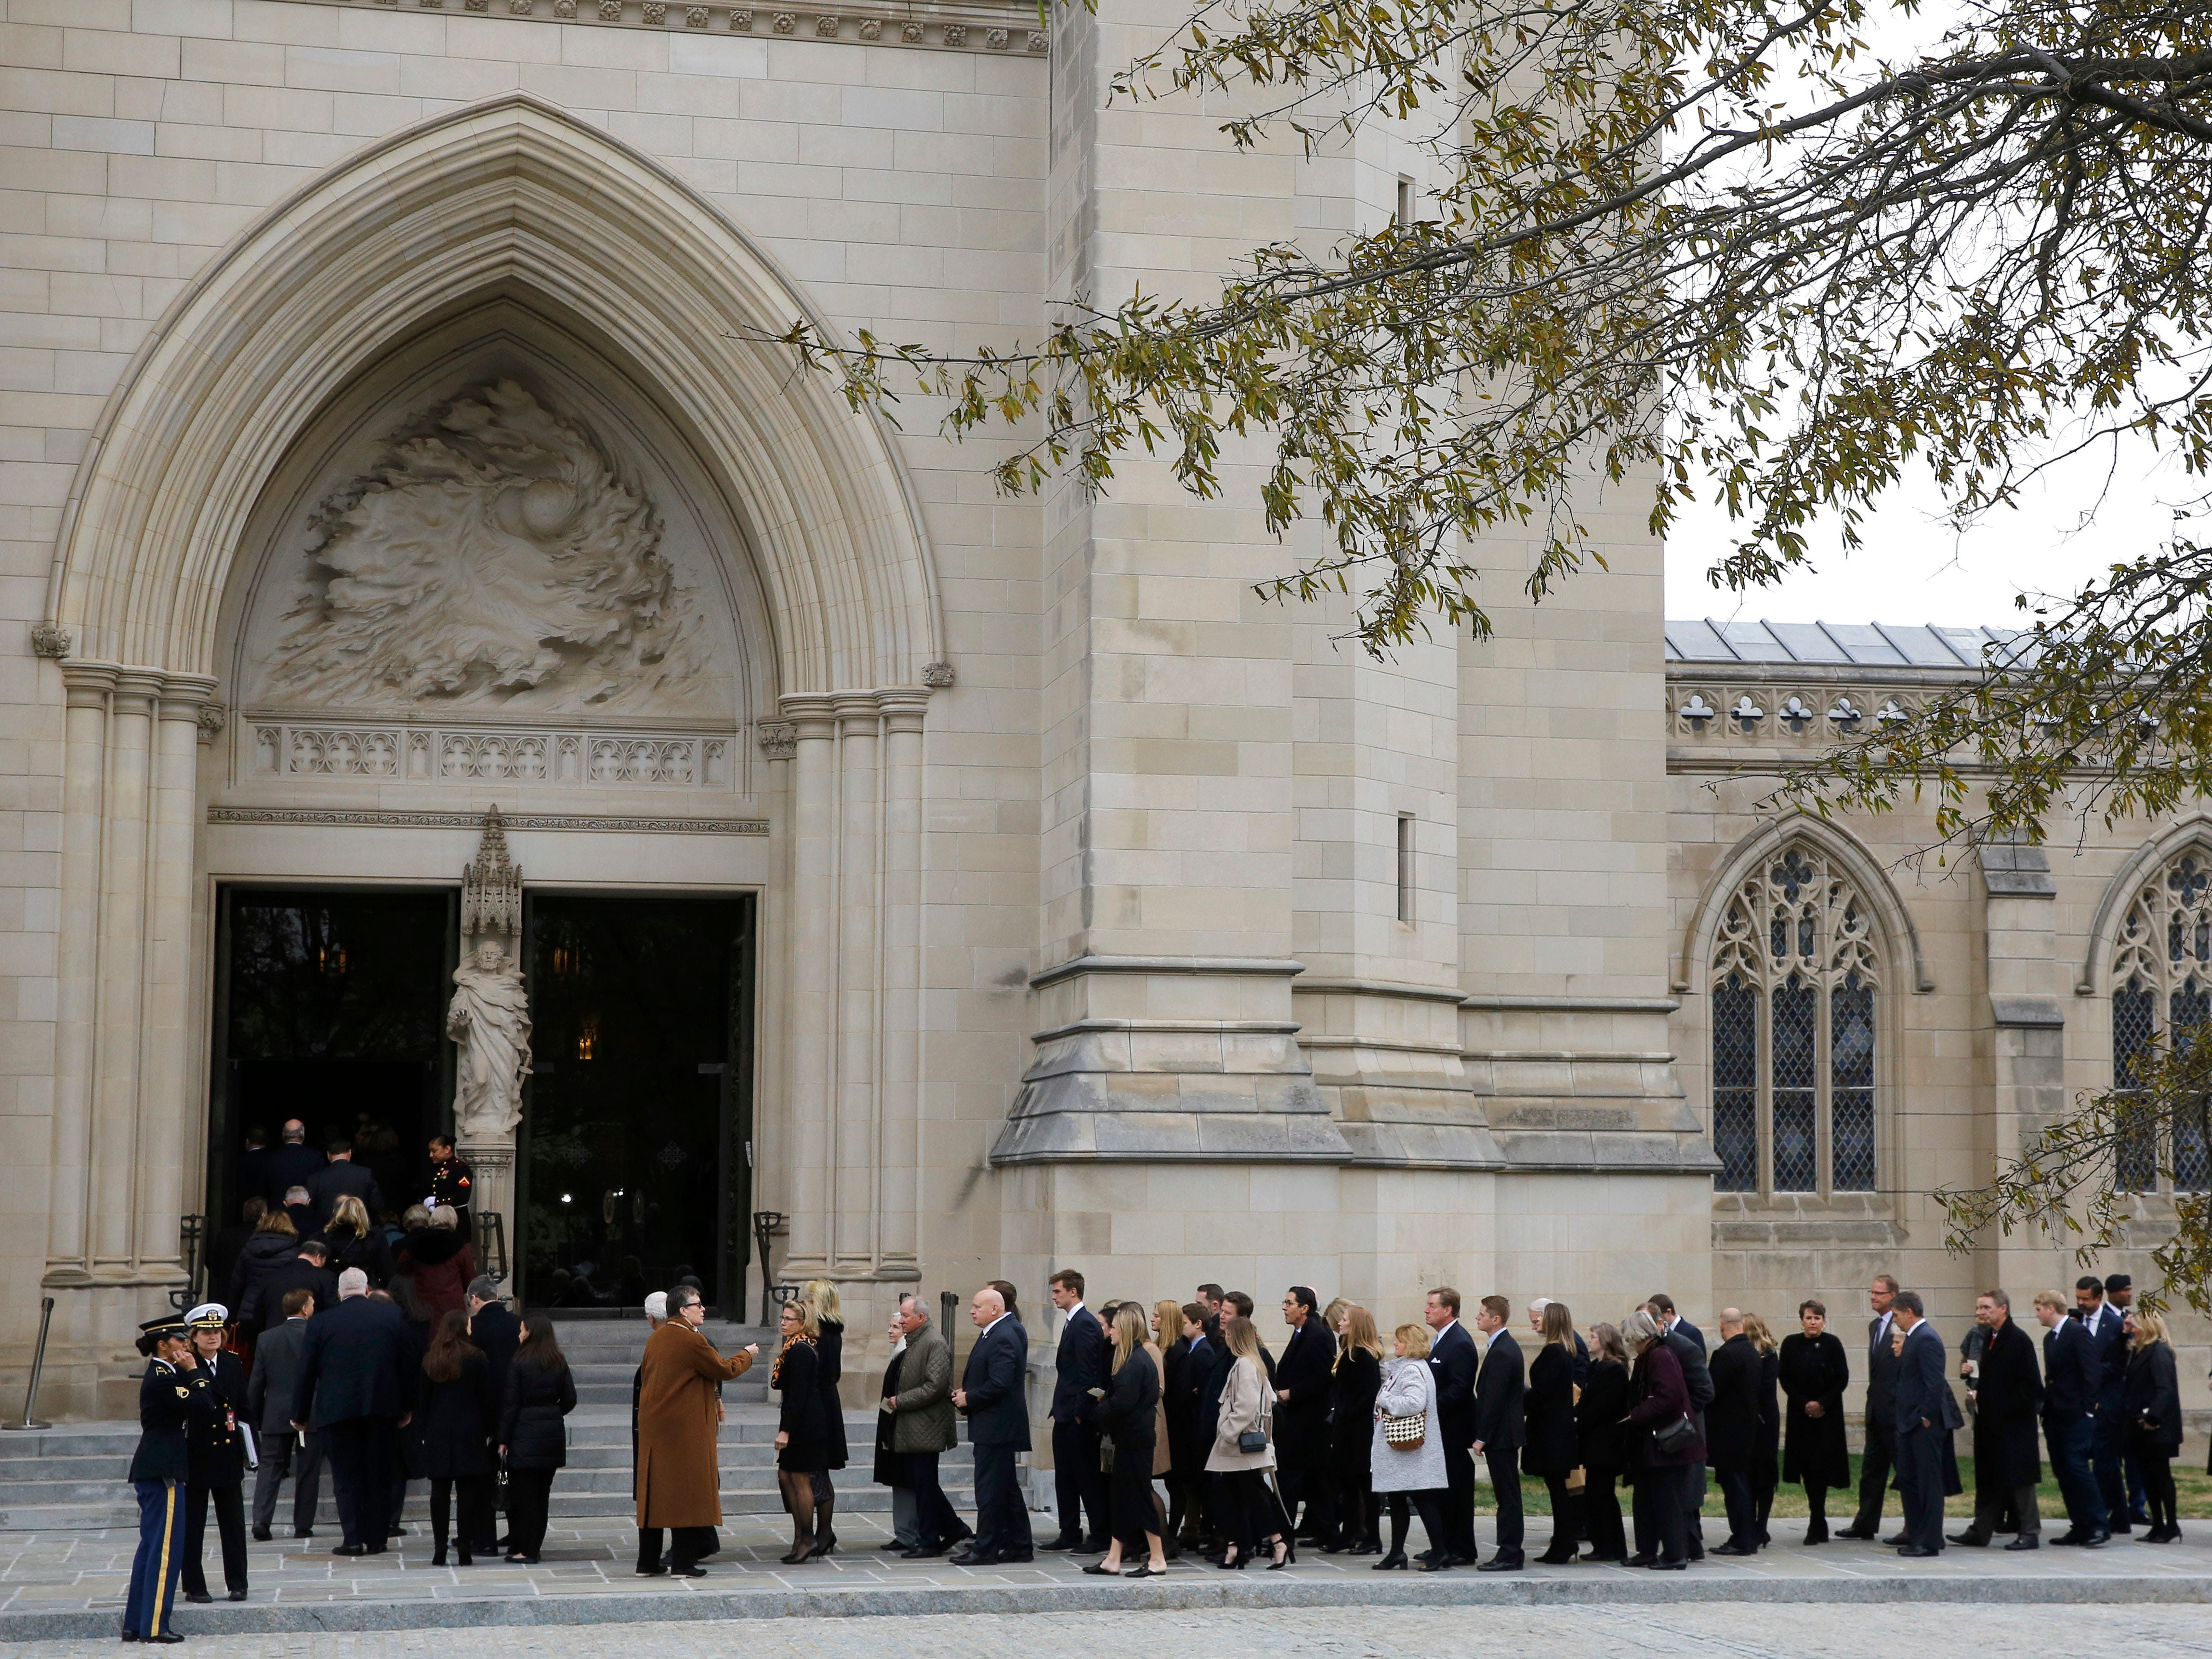 Mourners file into the Washington National Cathedral before the State Funeral for former President George H.W. Bush in Washington, Wednesday, Dec. 5, 2018.